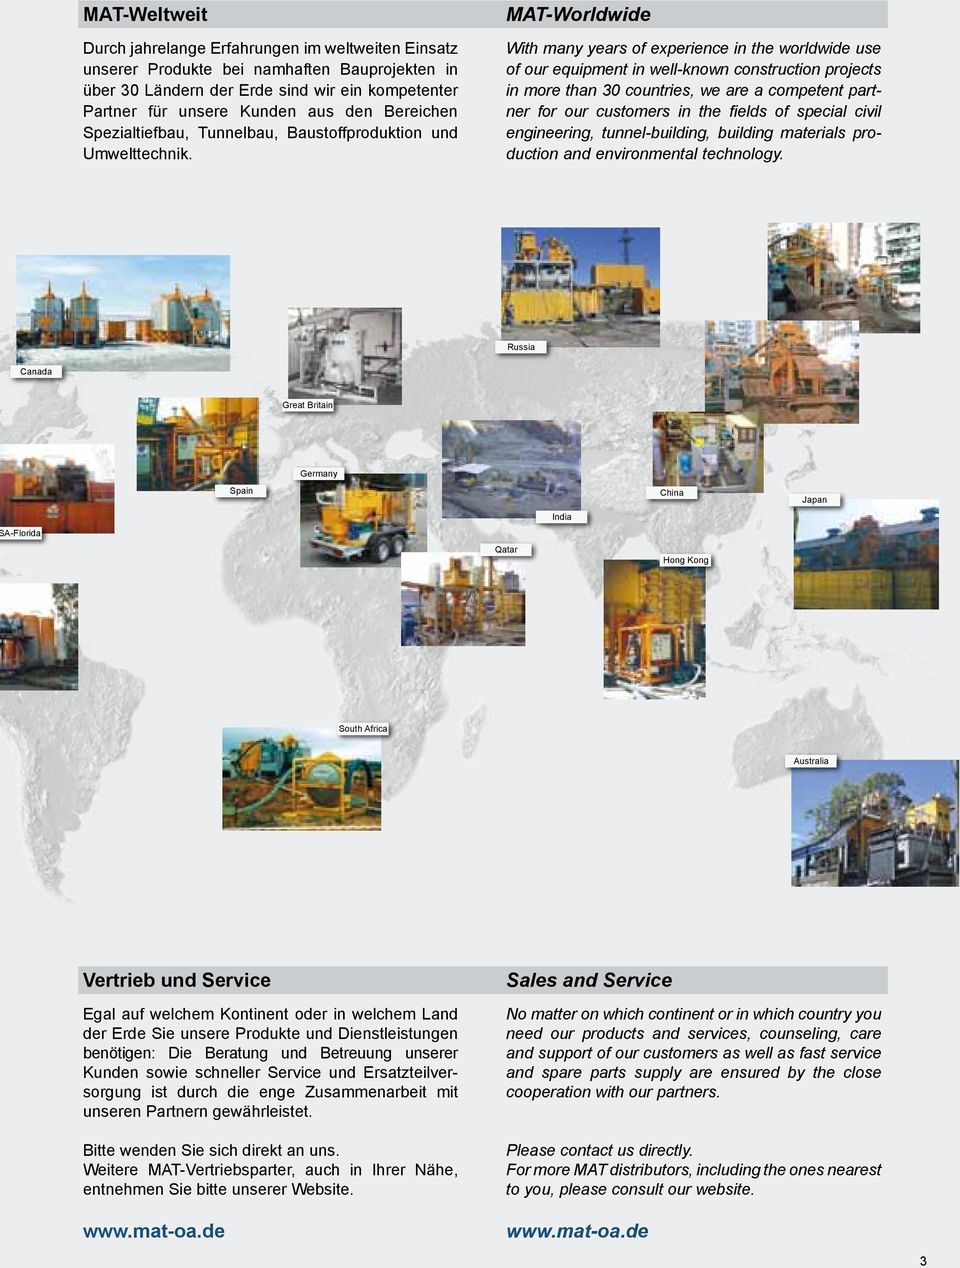 MAT-Worldwide With many years of experience in the worldwide use of our equipment in well-known construction projects in more than 30 countries, we are a competent partner for our customers in the